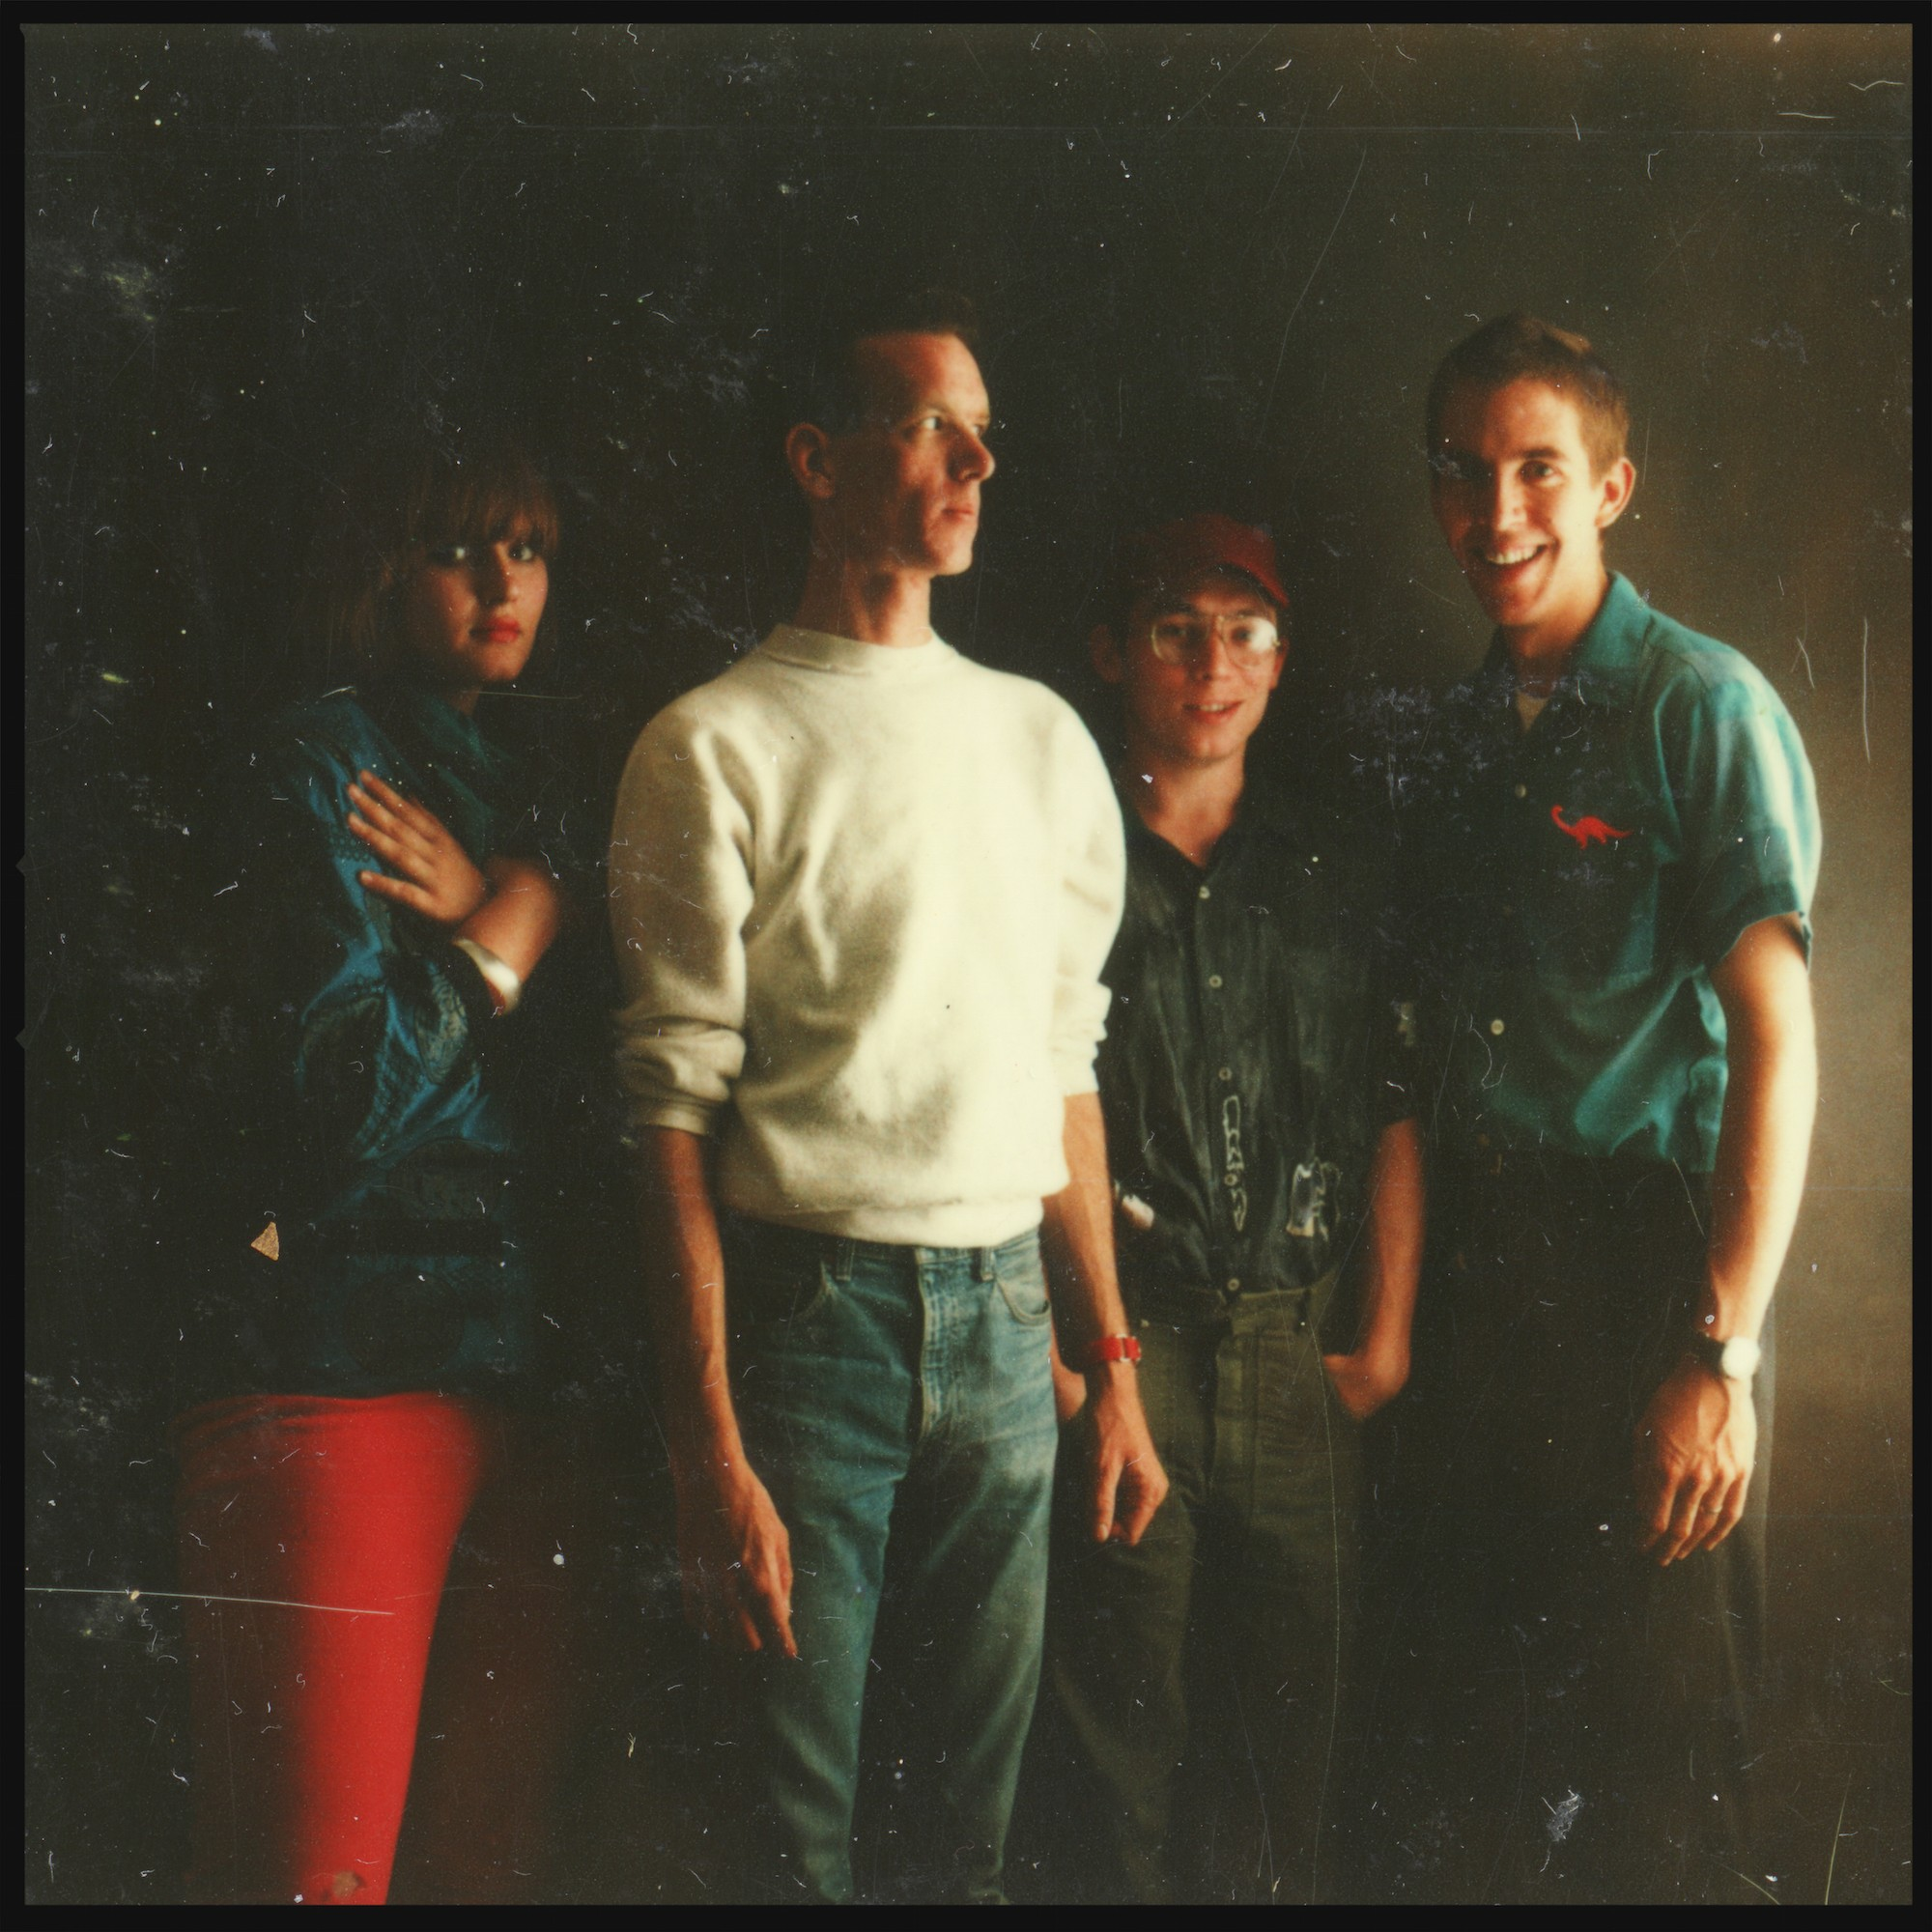 The original Athens, Ga. band, Pylon. A new double-live album has been released featuring a show from 1983.